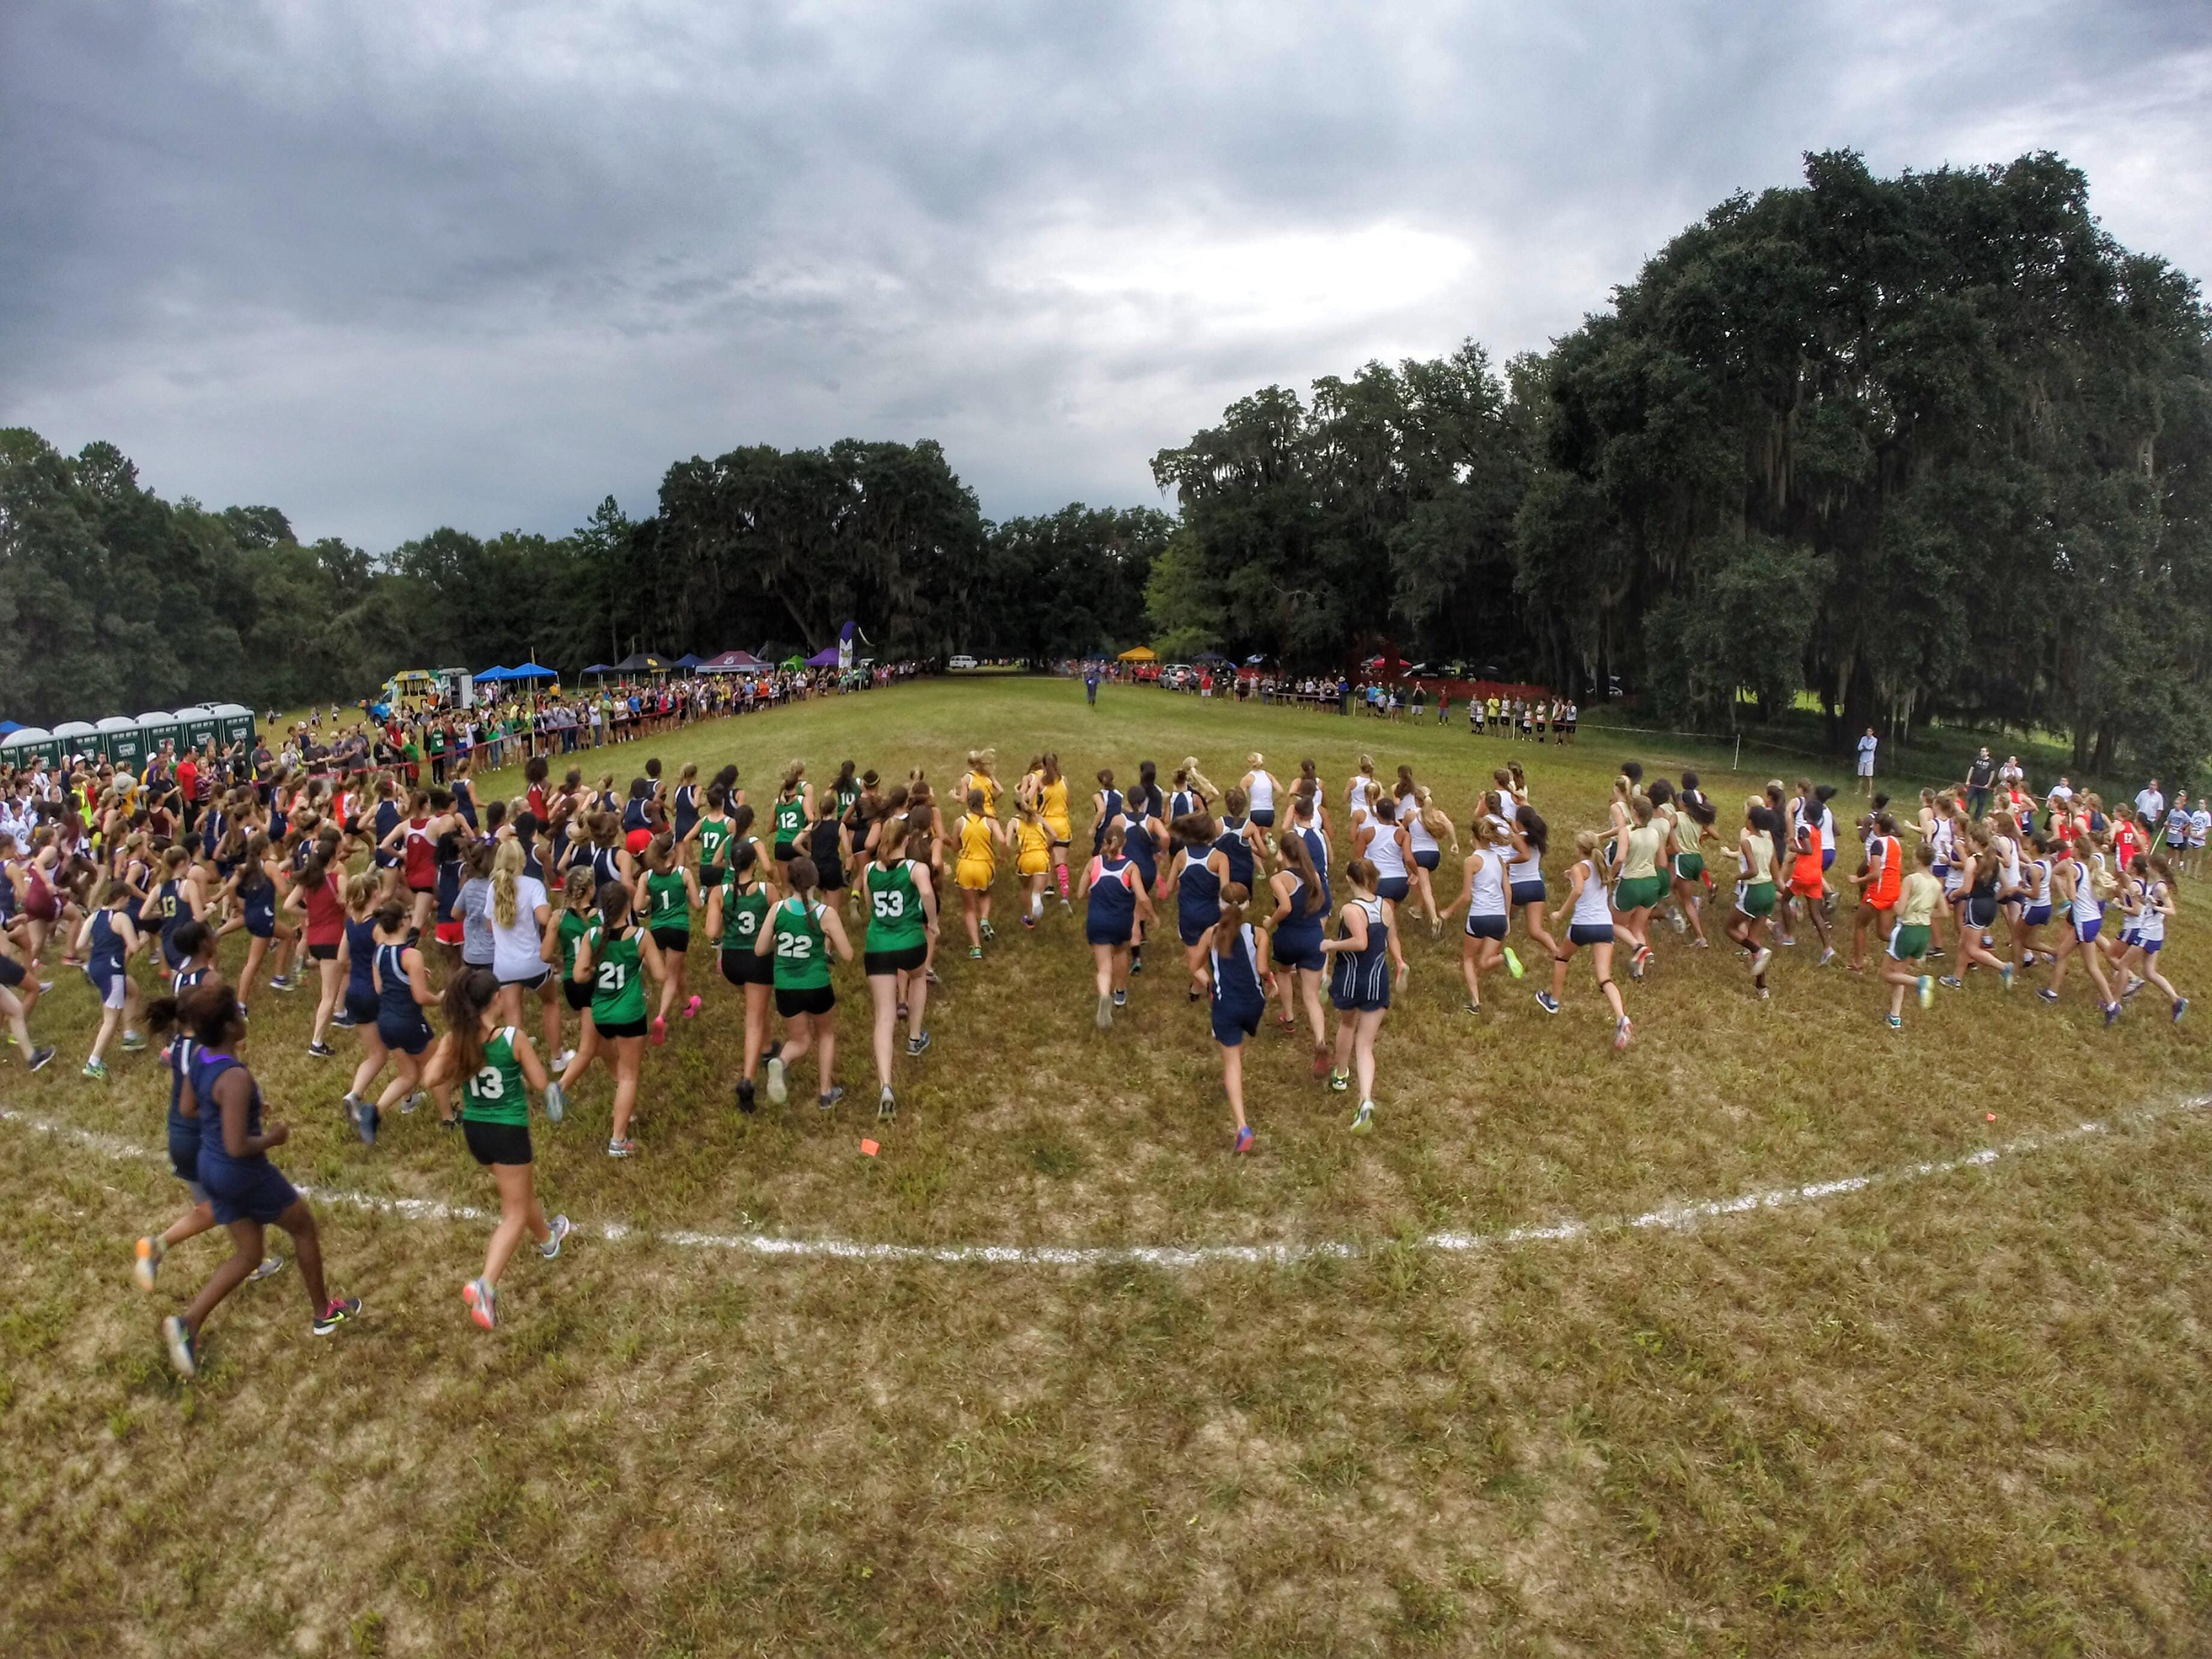 The girls race at the Cougar XC Challenge starts last Saturday at Elinor Klapp-Phipps Park.